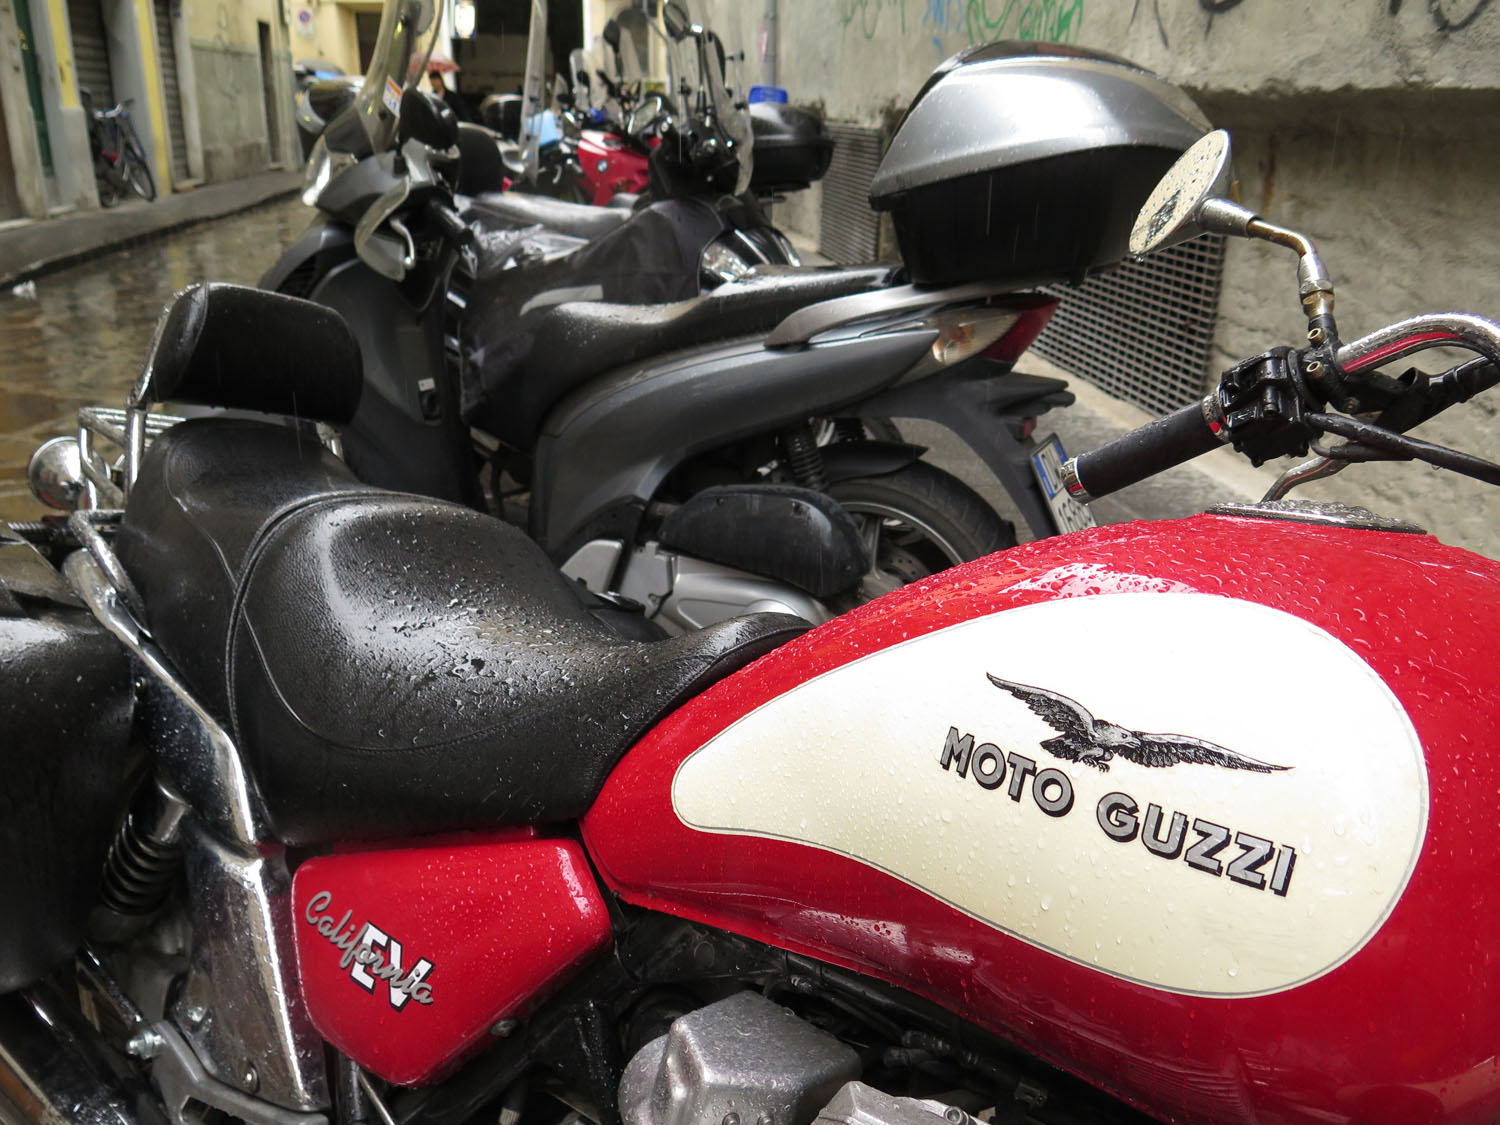 Italy-Florence-Street-Scenes-Motorcycles